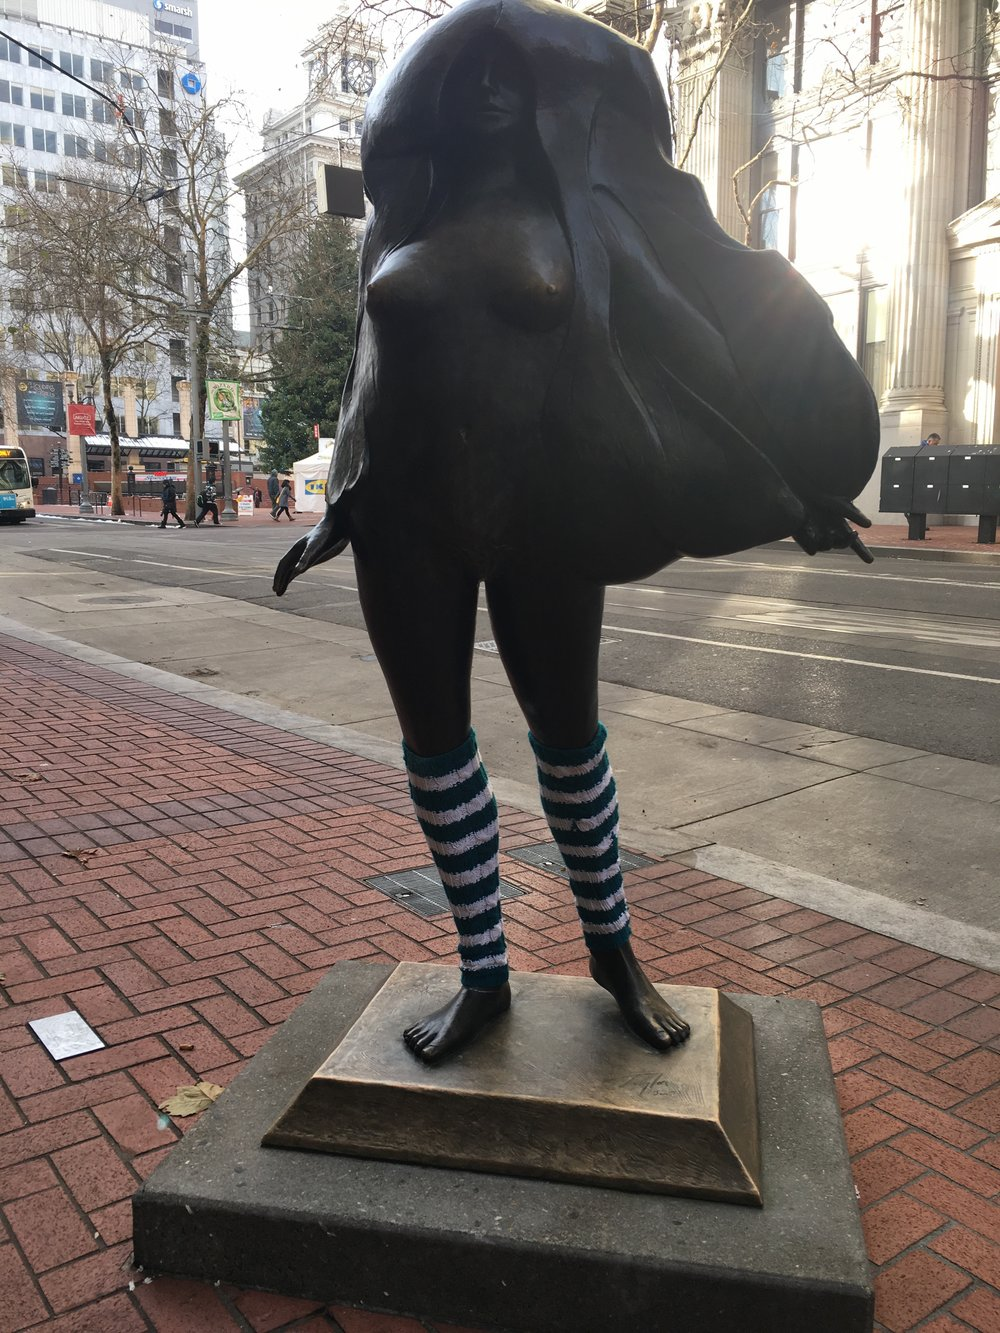 Portland Statue Enduring the Cold